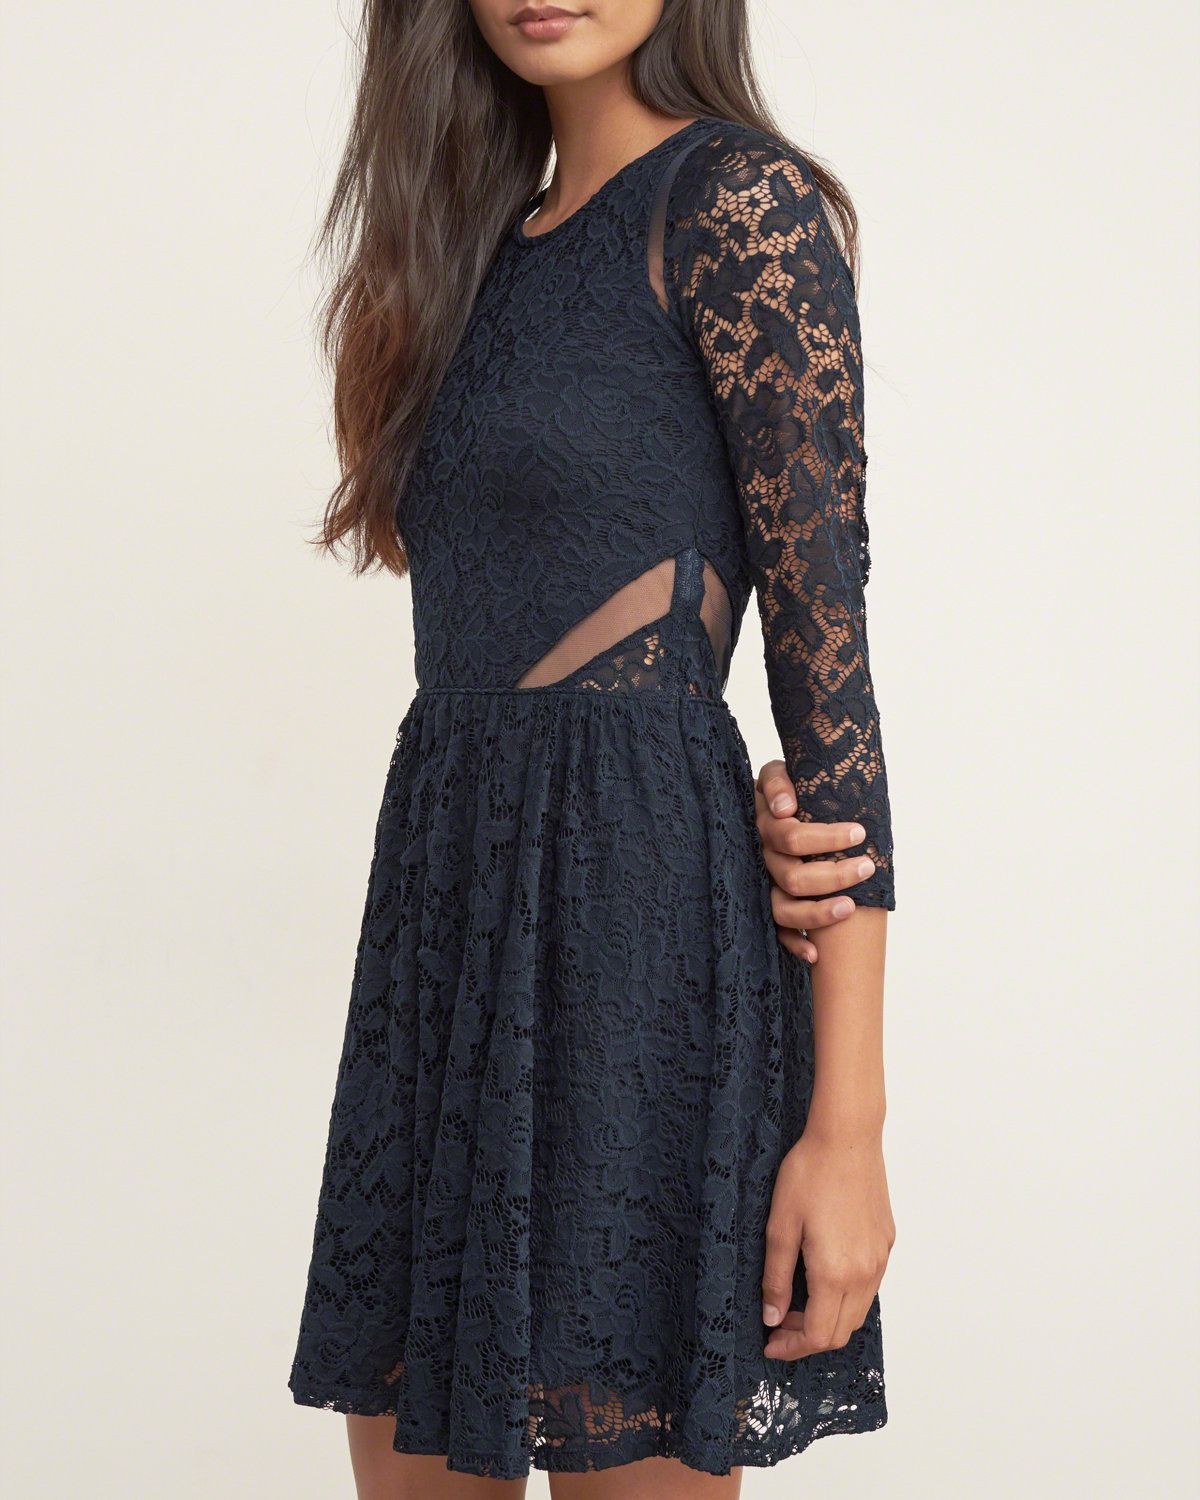 Womens Lace Skater Dress | A feminine take on a skater silhouette with all-over intricate lace, featuring feminine mesh and sheer detailing, Flirty Fit | Abercrombie.com